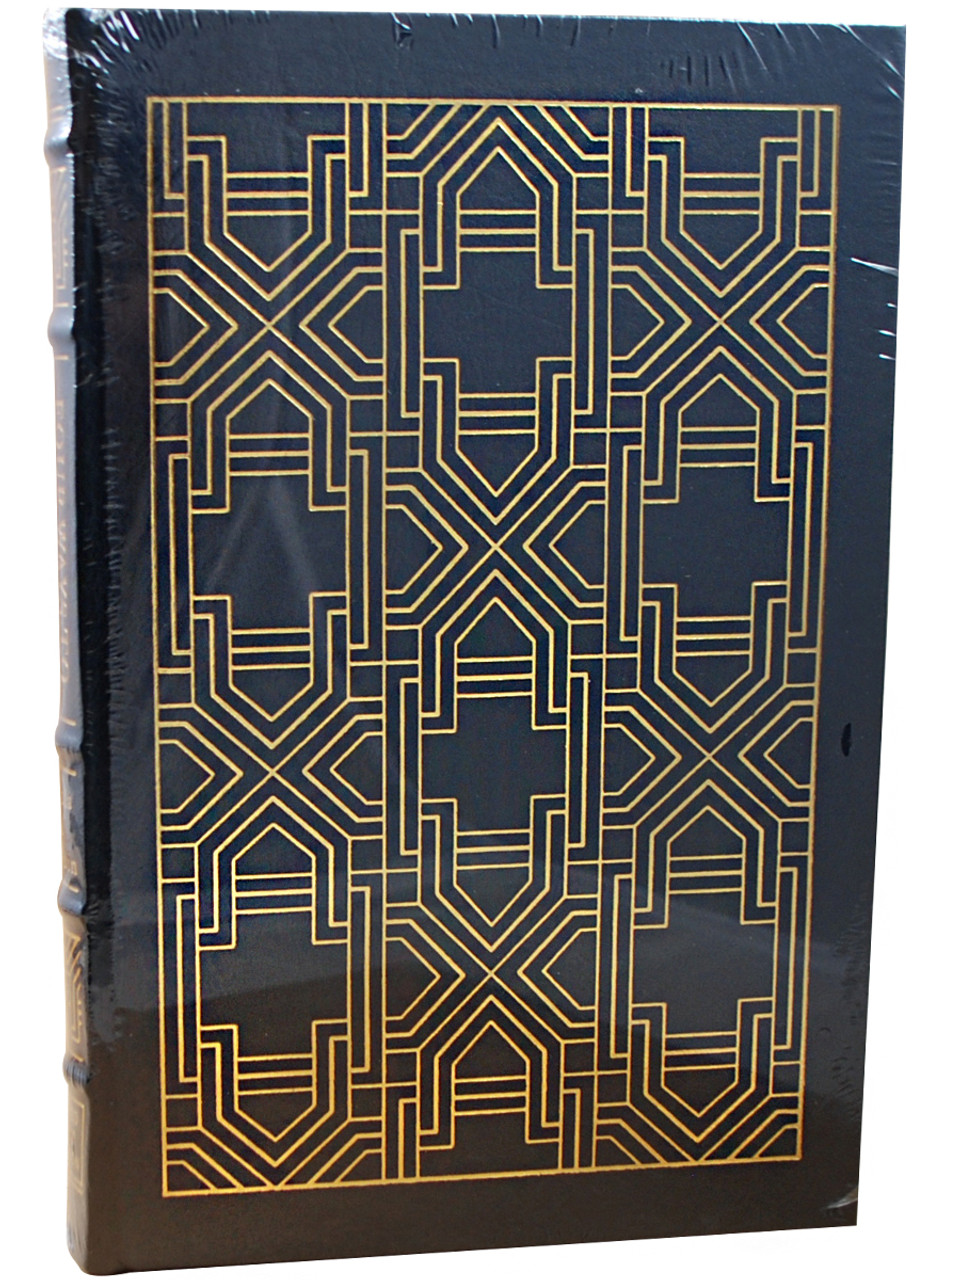 """Ursula K. Le Guin """"Four Ways To Forgiveness"""" Signed First Edition, Leather Bound Collector's Edition [Sealed]"""